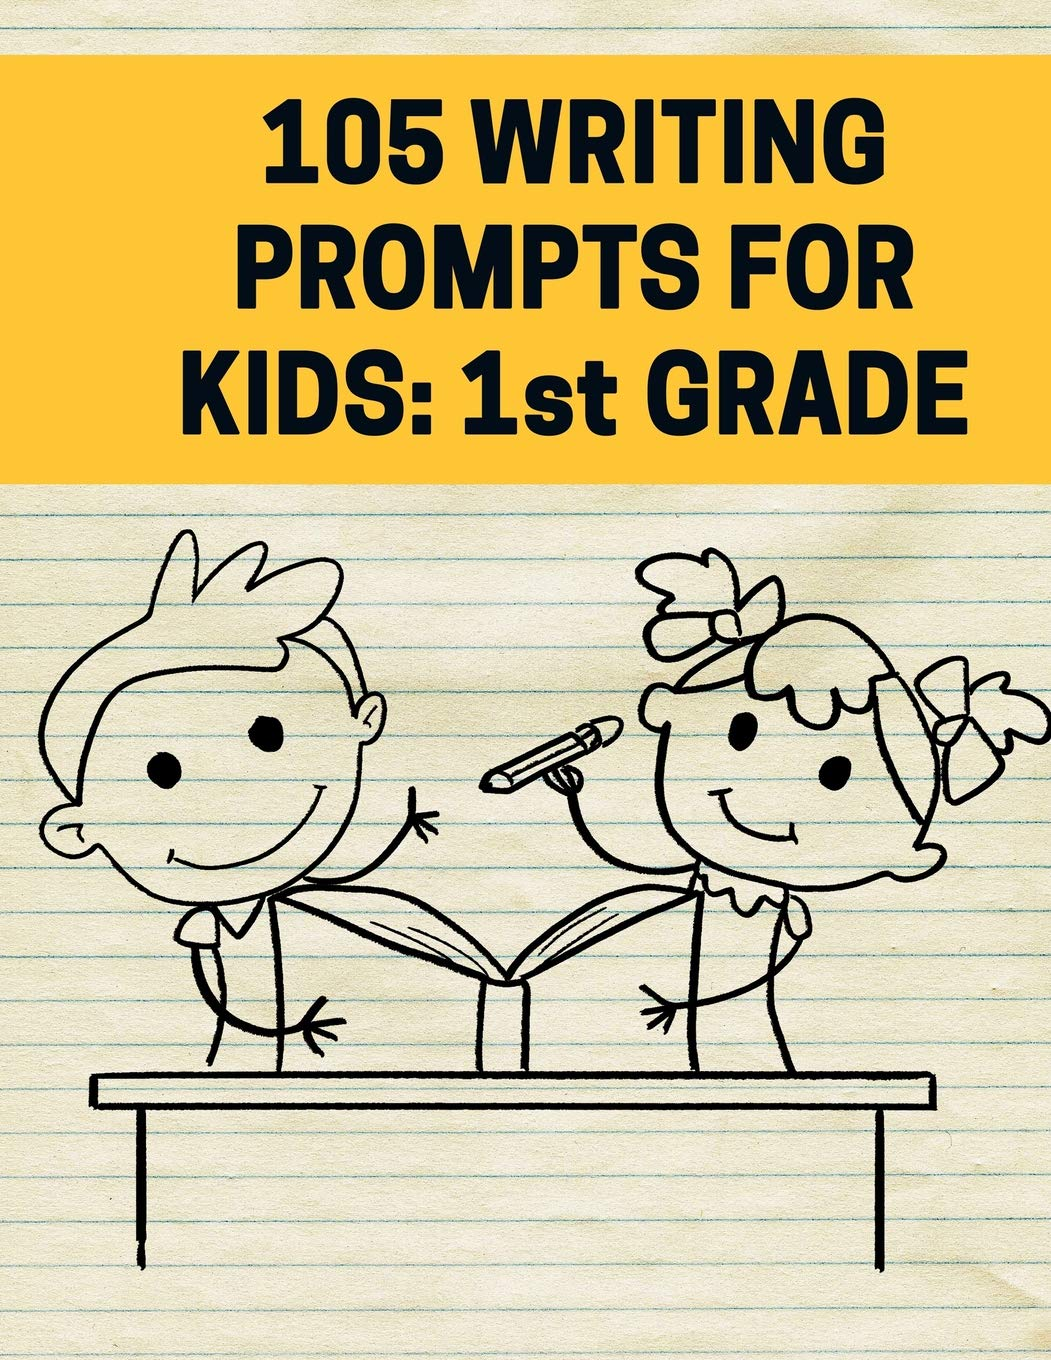 105 Writing Prompts For Kids - 1st Grade: Creative Things to Write ...